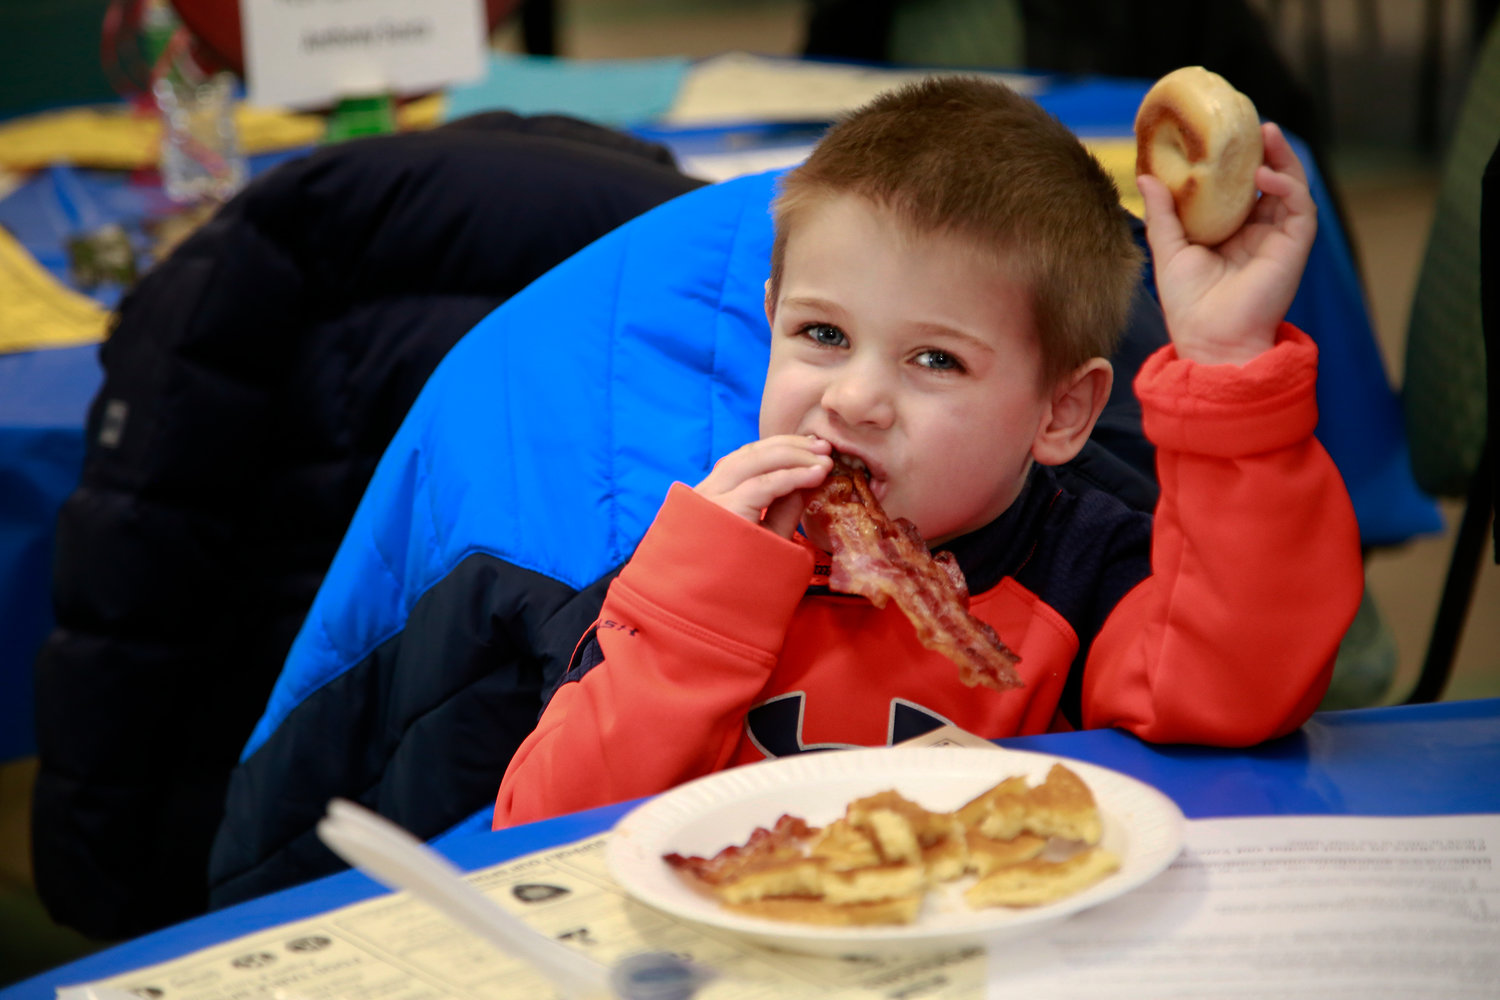 Oceanside Kiwanis hosted its annual Super Bowl Sunday pancake breakfast in the St. Anthony's Church cafeteria. Sean Horbach, 4, was a very hungry attendee.